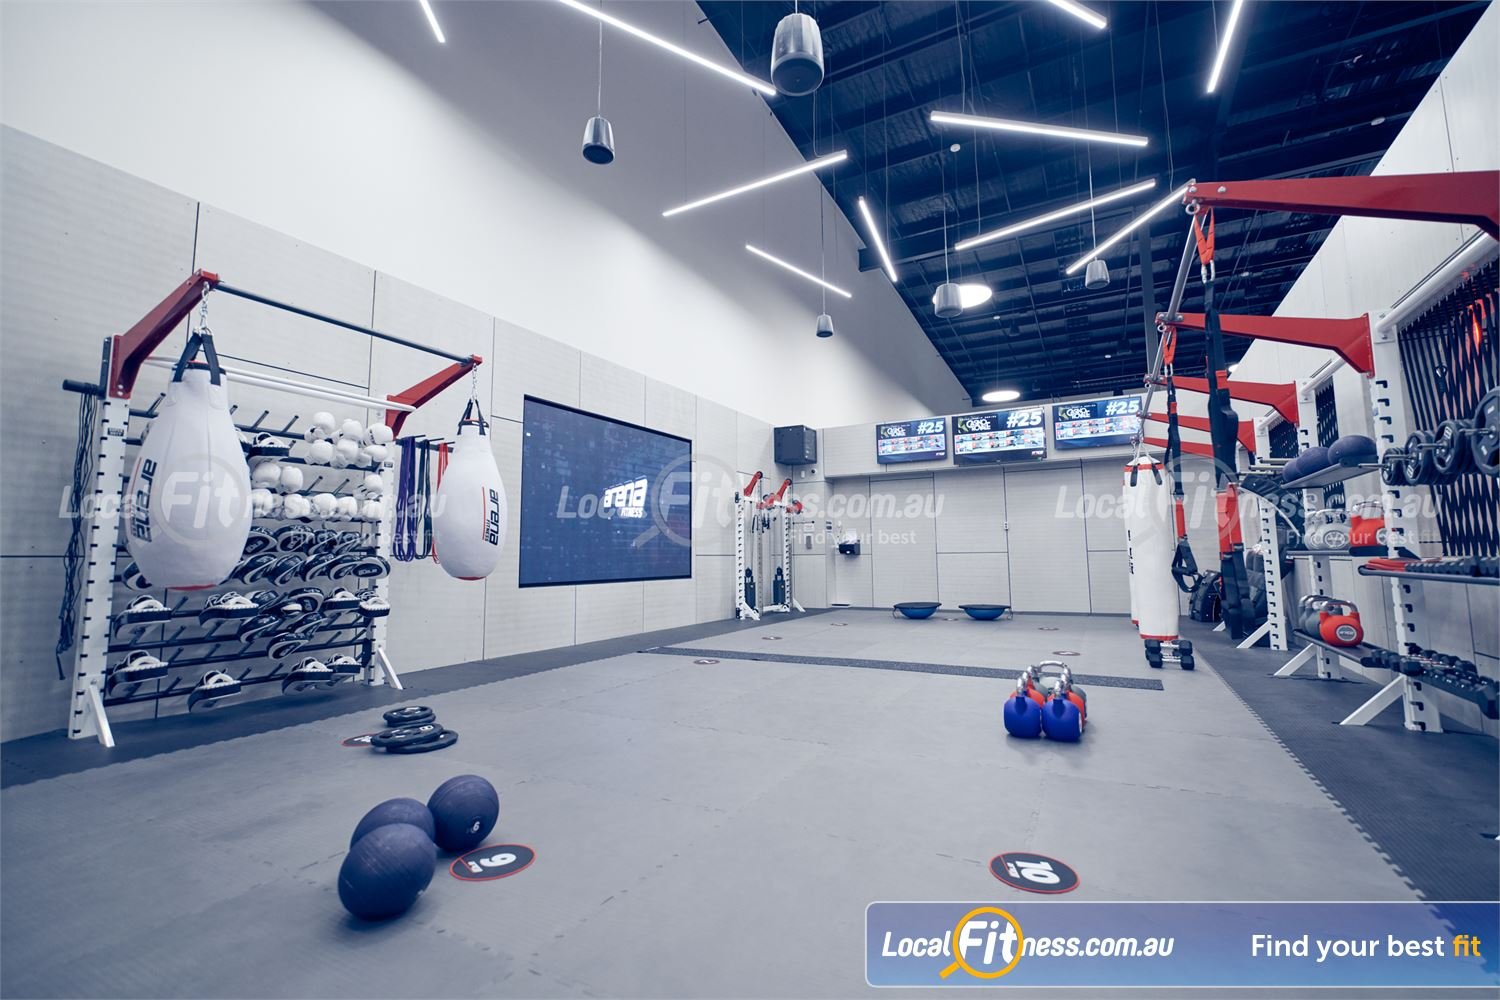 Goodlife Health Clubs Ringwood Arena Fitness is coming to Goodlife Ringwood.